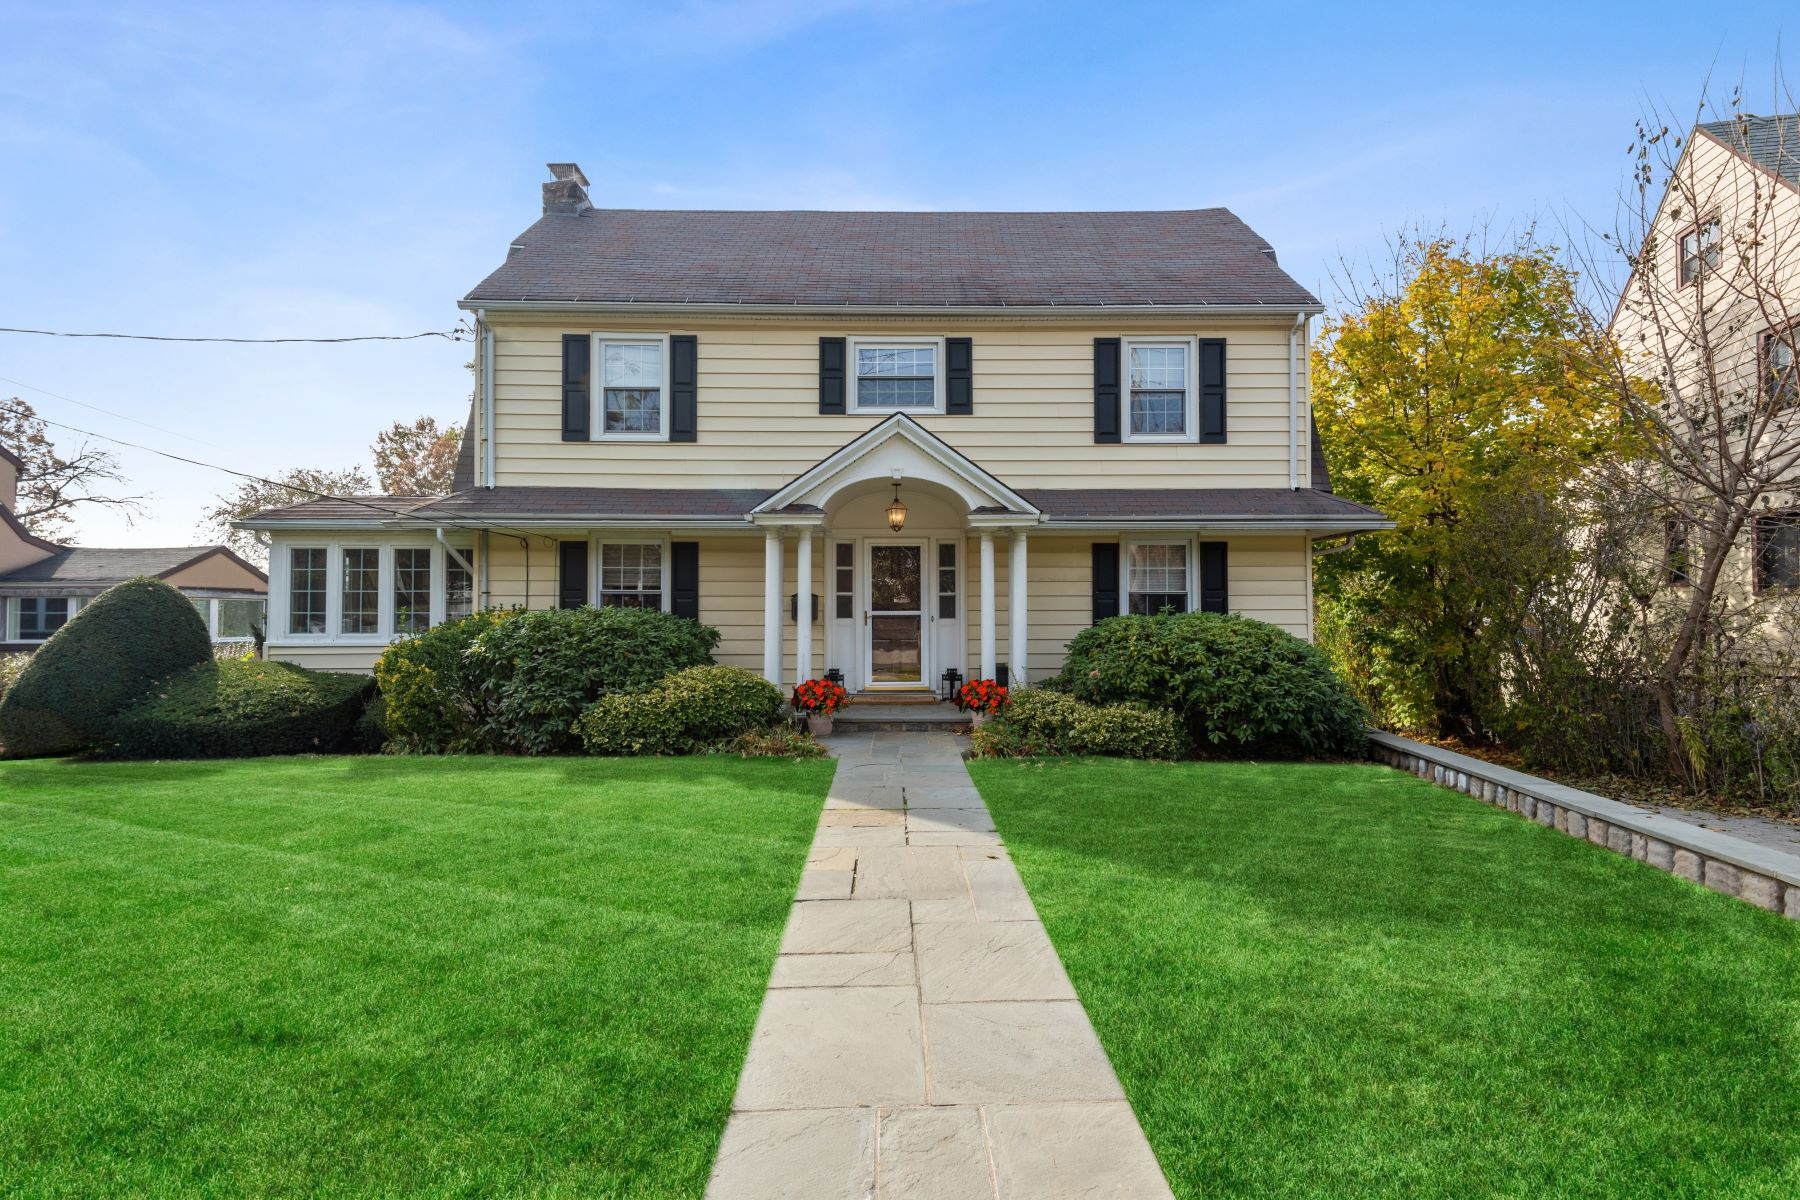 Single Family Homes for Sale at Welcome To 877 James Street 877 James Street Pelham, New York 10803 United States